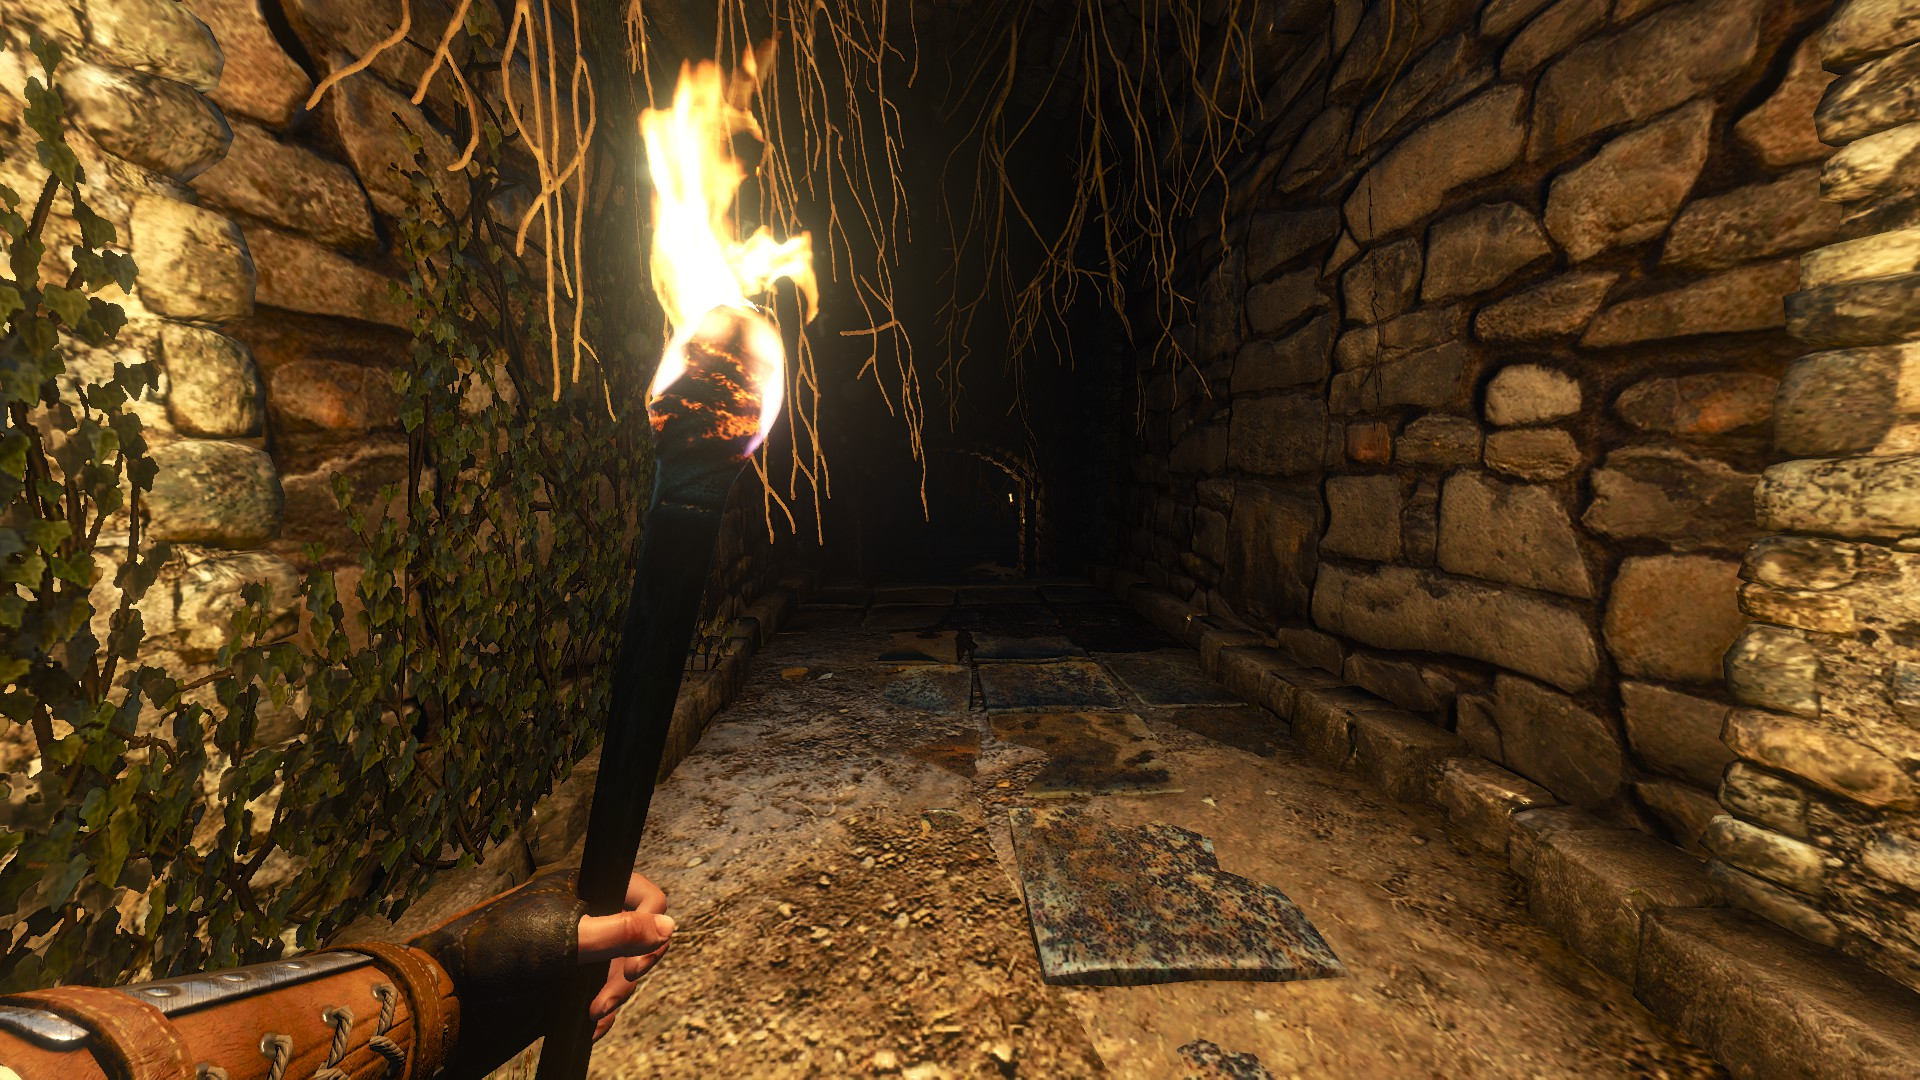 Mod Turns Witcher 3 Into Awesome First Person Adventure The Witcher 3 FP